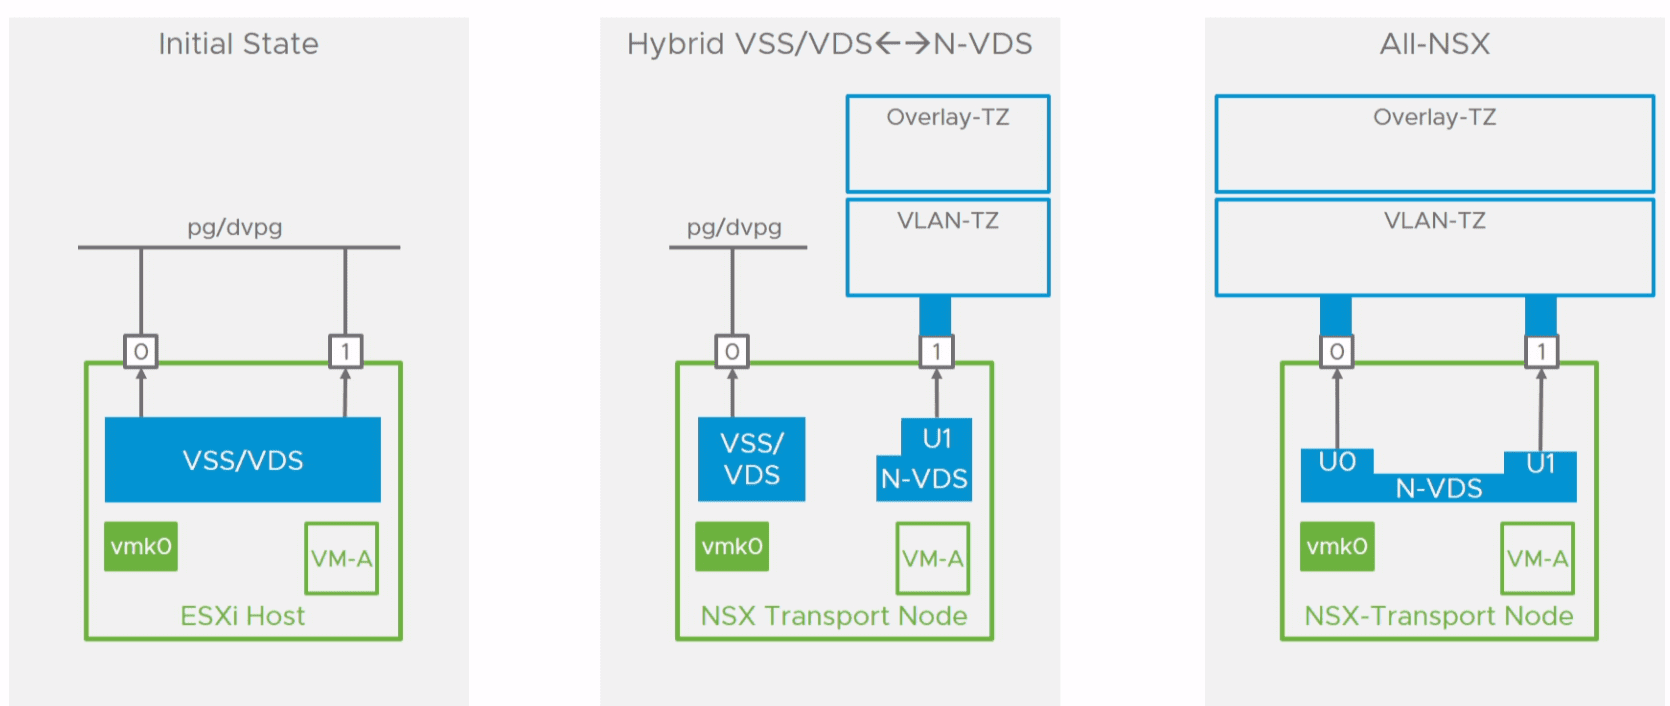 Migration-process-overview-from-VSS-VDS-to-N-VDS What is the VMware NSX-T Virtual Distributed Switch N-VDS Deployment and Migration